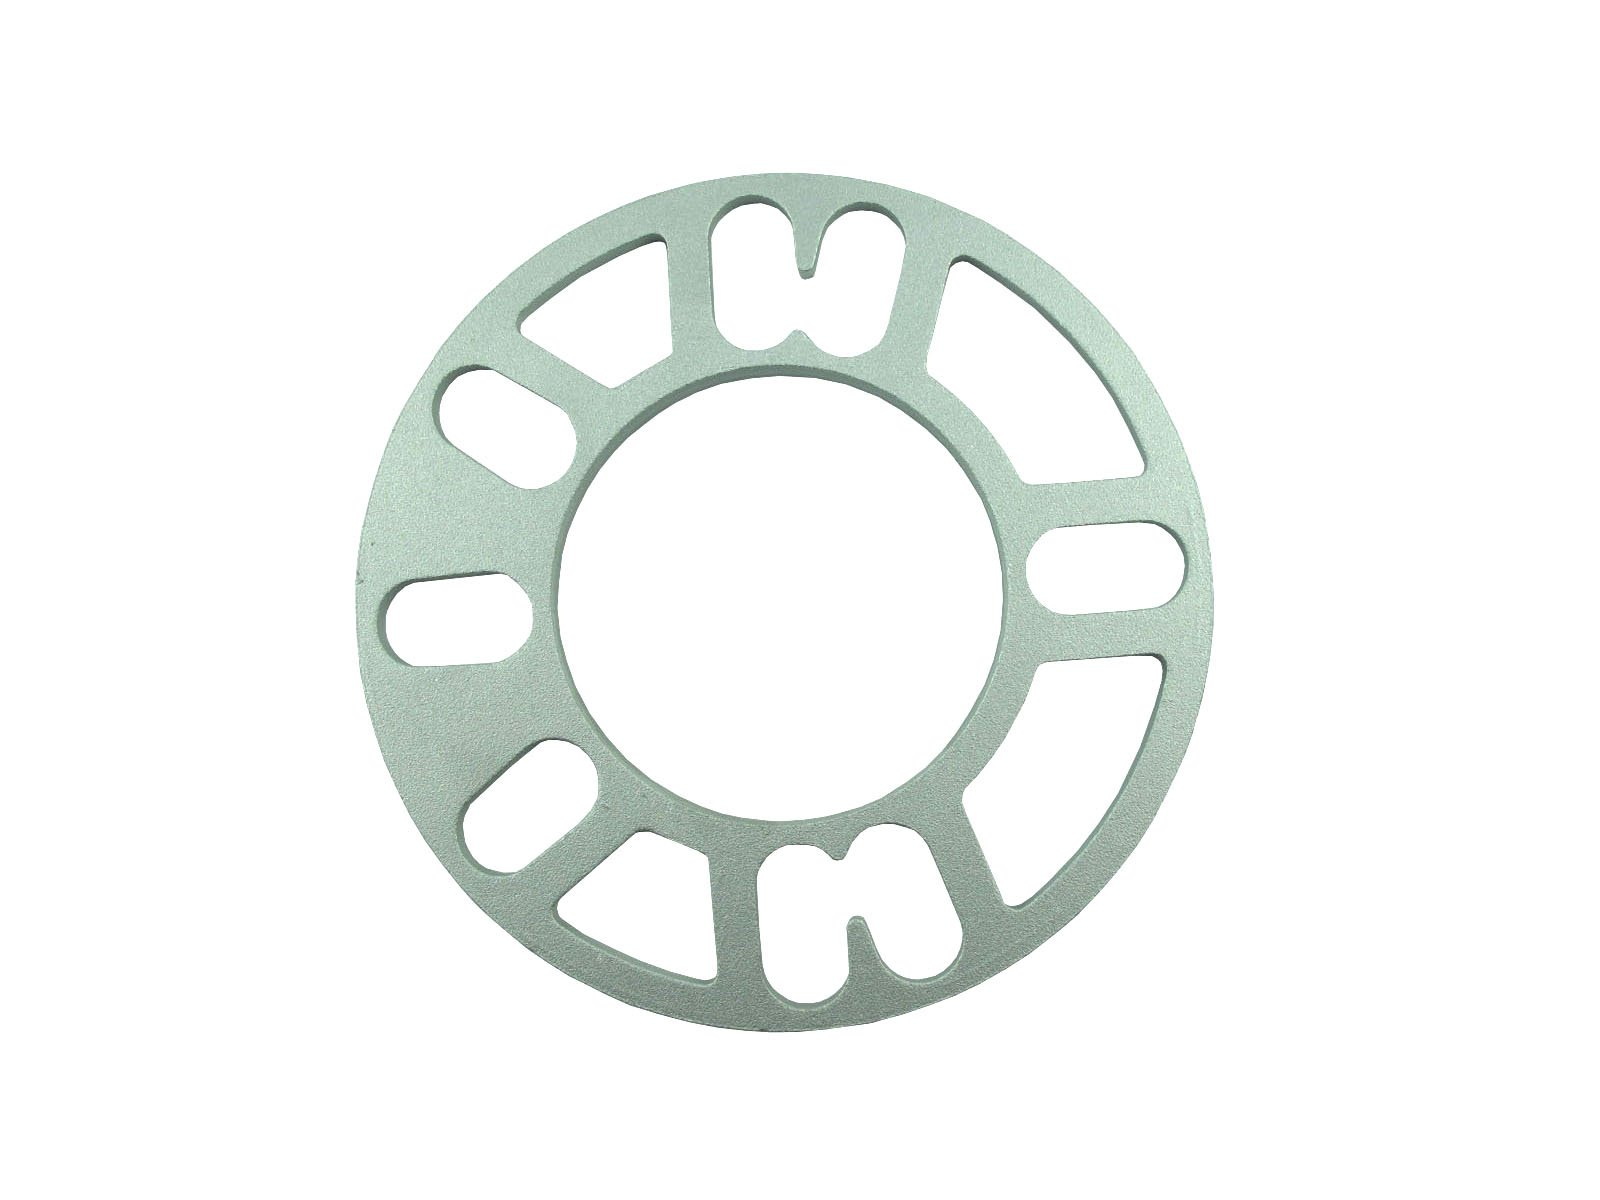 2PCS - SH-WS100-5 Aluminum Alloy 4 and 5 Lug 5mm Wheel Spacer Gasket For Auto Vehicle